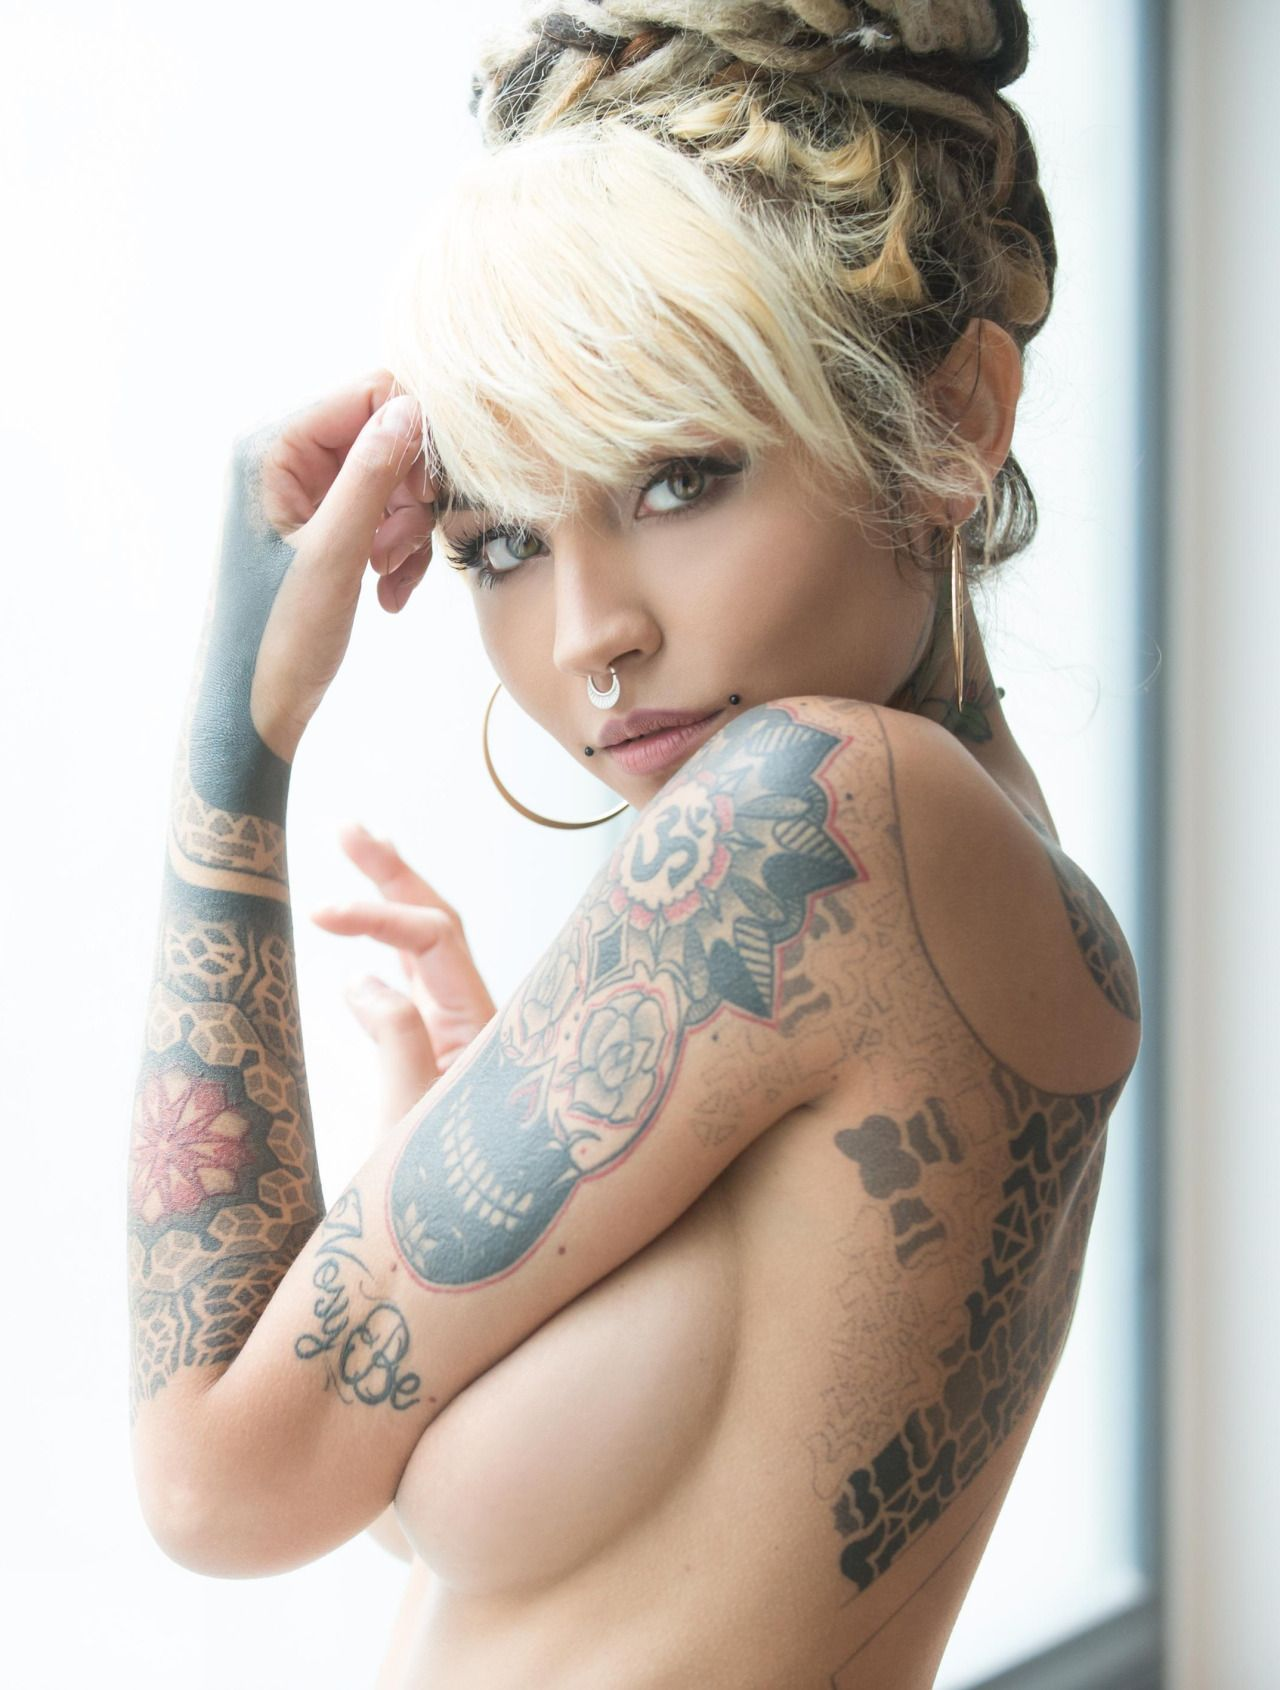 Fishball ink princess pinterest tattoo tatting and for Nude women tattoo